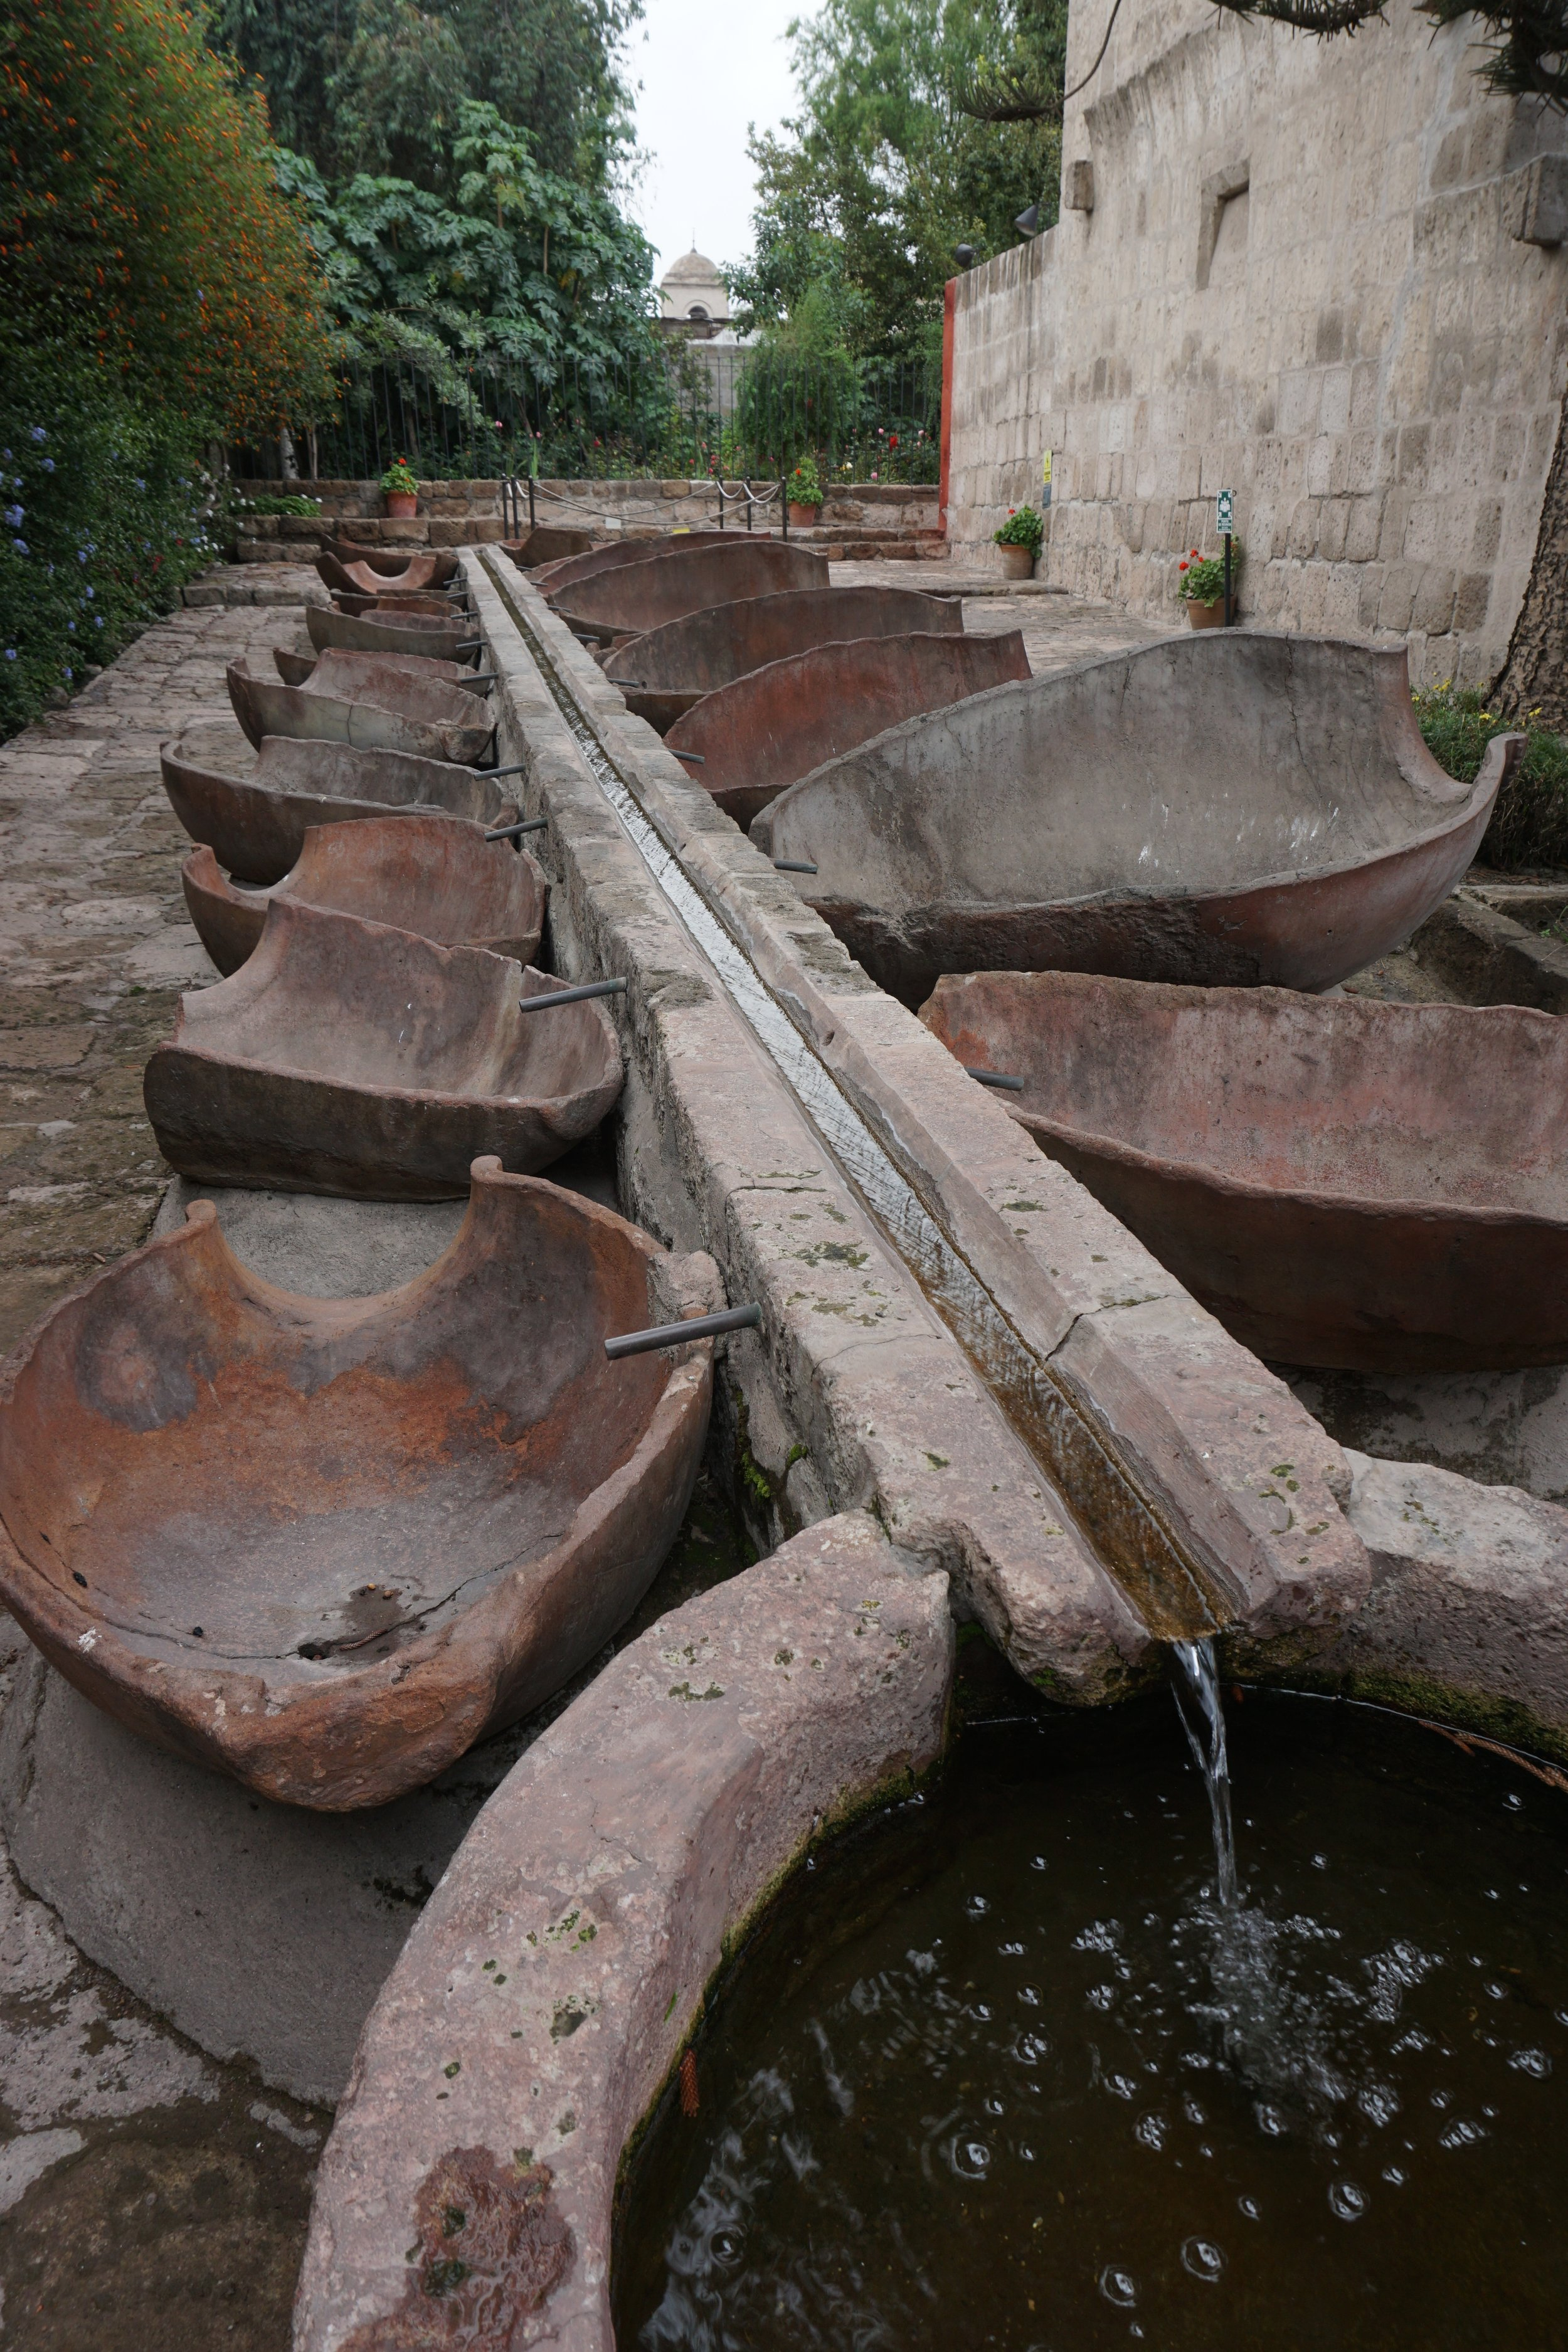 A clever waterway with inlets to laundry basins at Monasterio de Santa Catalina